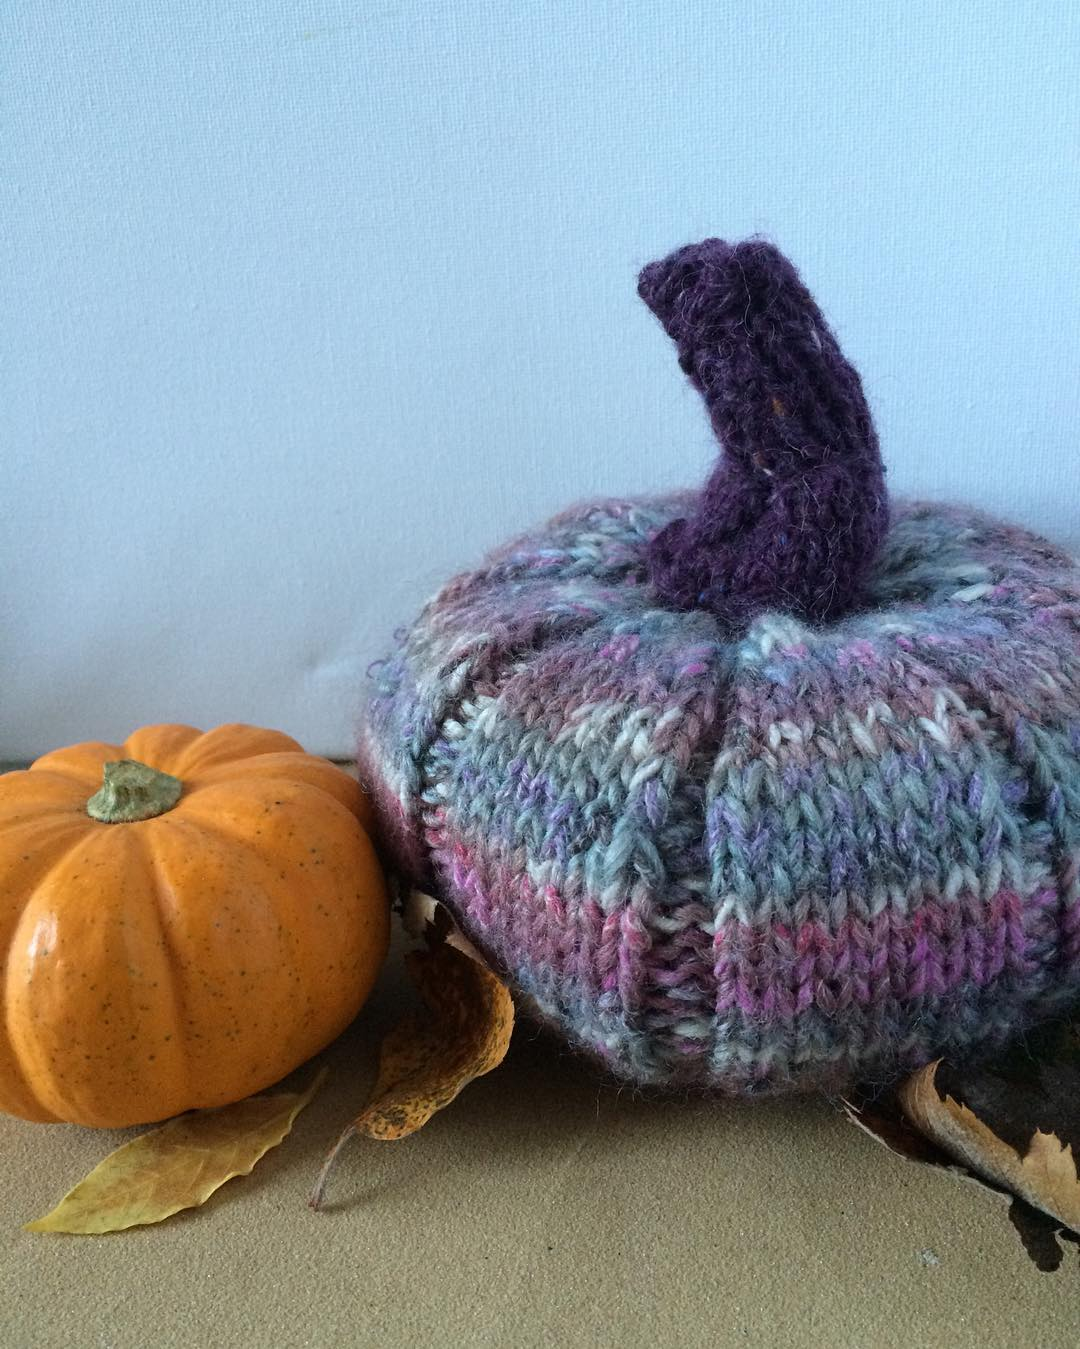 knitted Pumpkin finished! I bought some pumpkin orange wool todayhellip